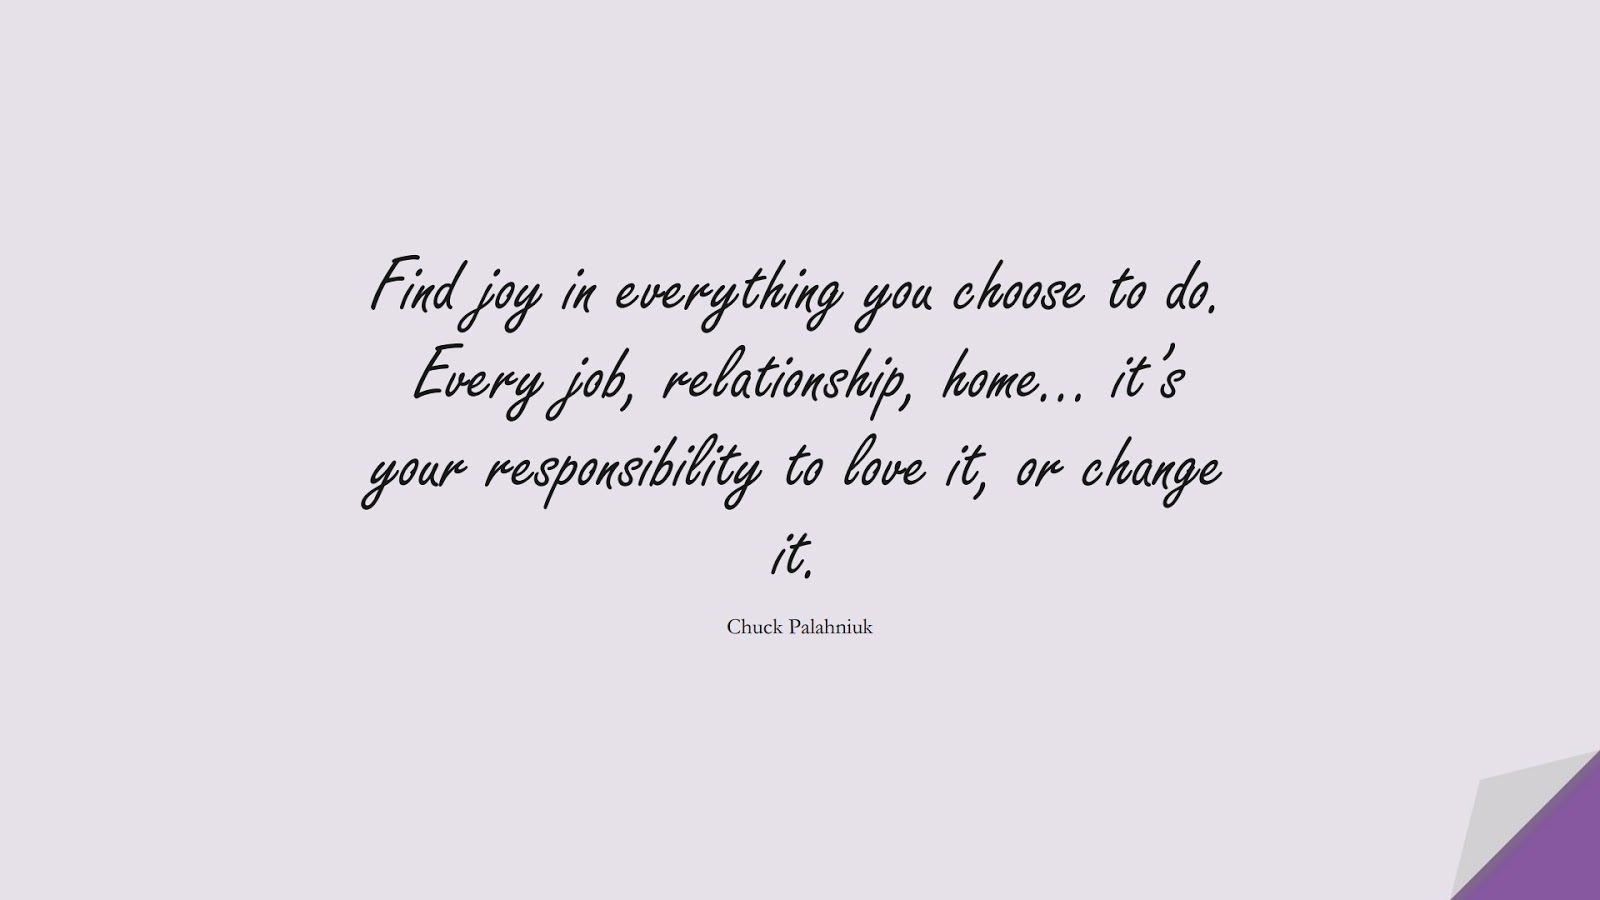 Find joy in everything you choose to do. Every job, relationship, home… it's your responsibility to love it, or change it. (Chuck Palahniuk);  #RelationshipQuotes